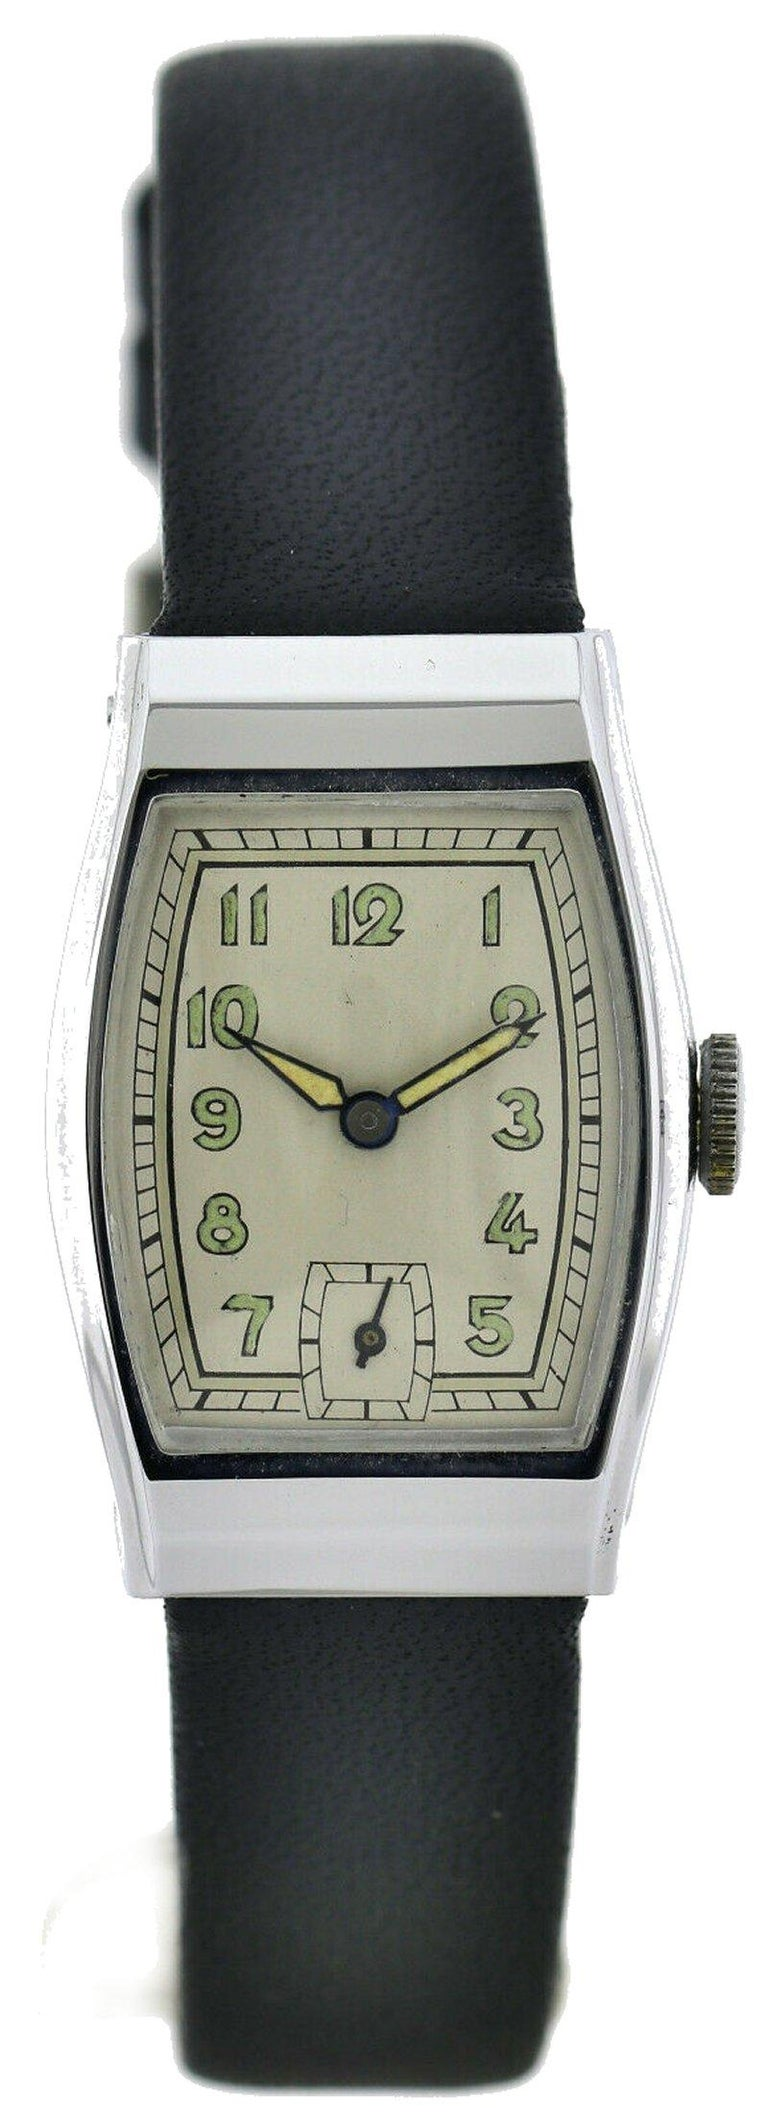 Art Deco Gents Chrome Wristwatch Old Stock, Never Worn, Newly Serviced, 1930 In Excellent Condition For Sale In Westward ho, GB